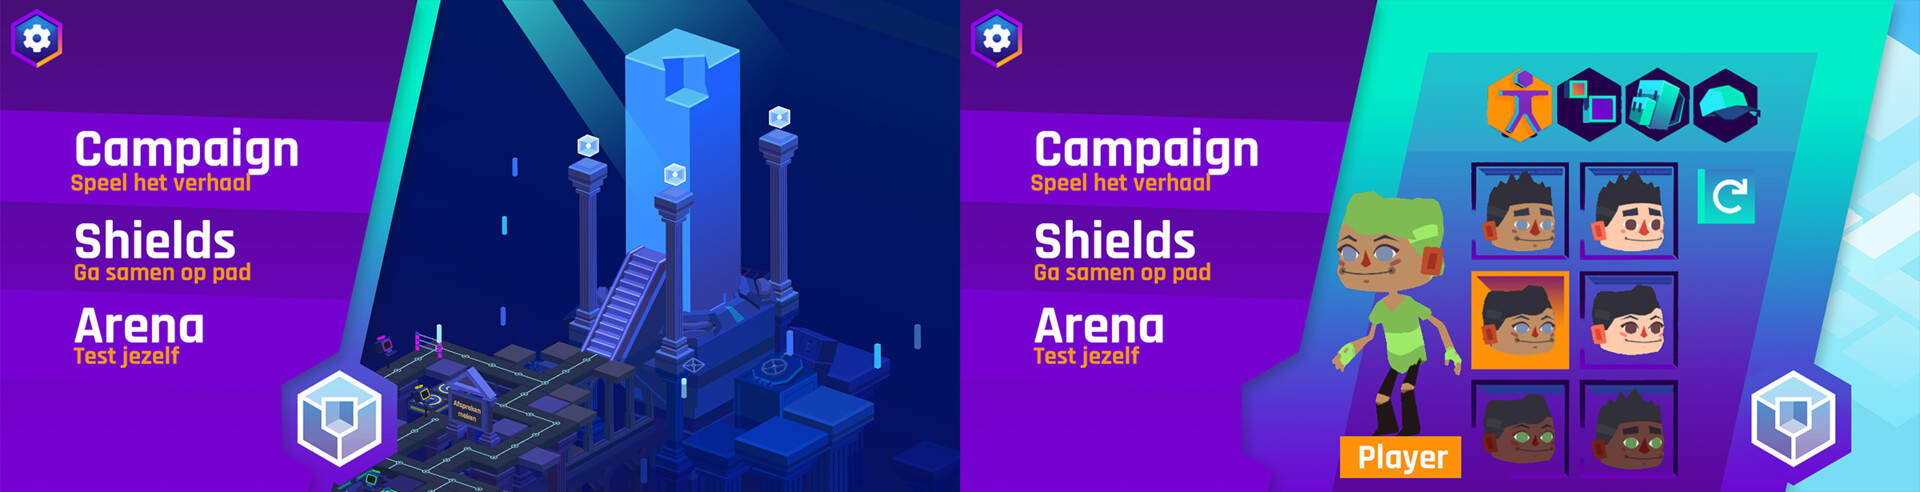 Mobile UI concepts.  Characters and game assets are taken from the game.